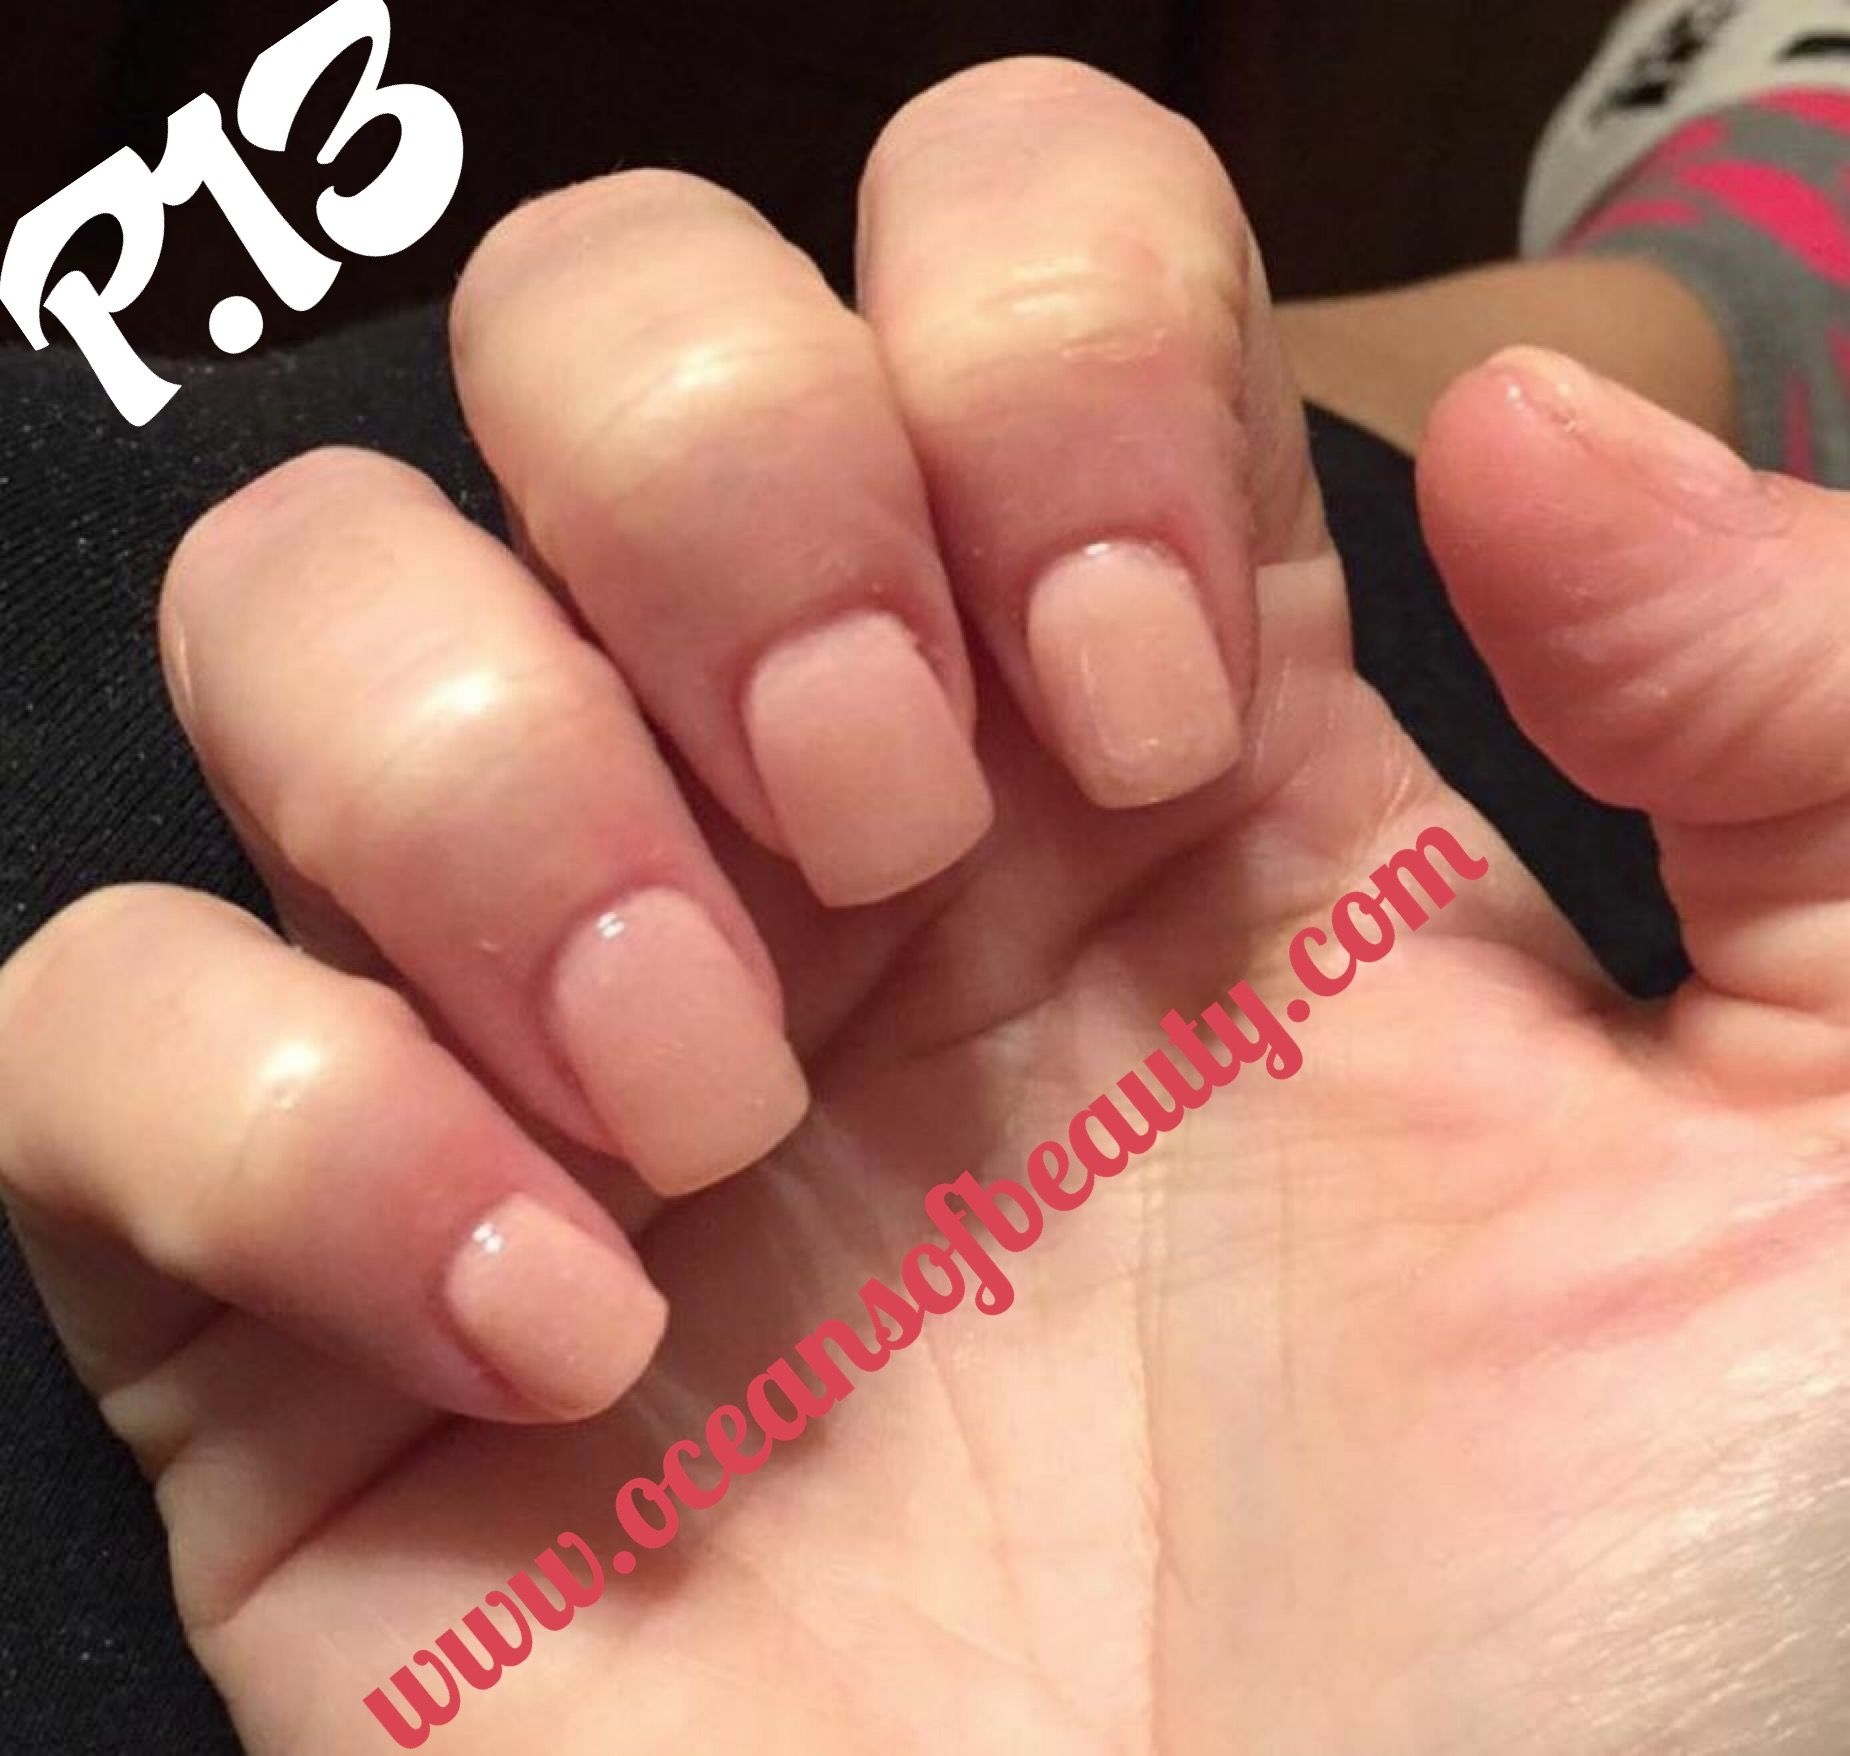 P.13 EZdip Gel Powder. DIY EZ Dip. No lamps needed, lasts 2-3 weeks ...